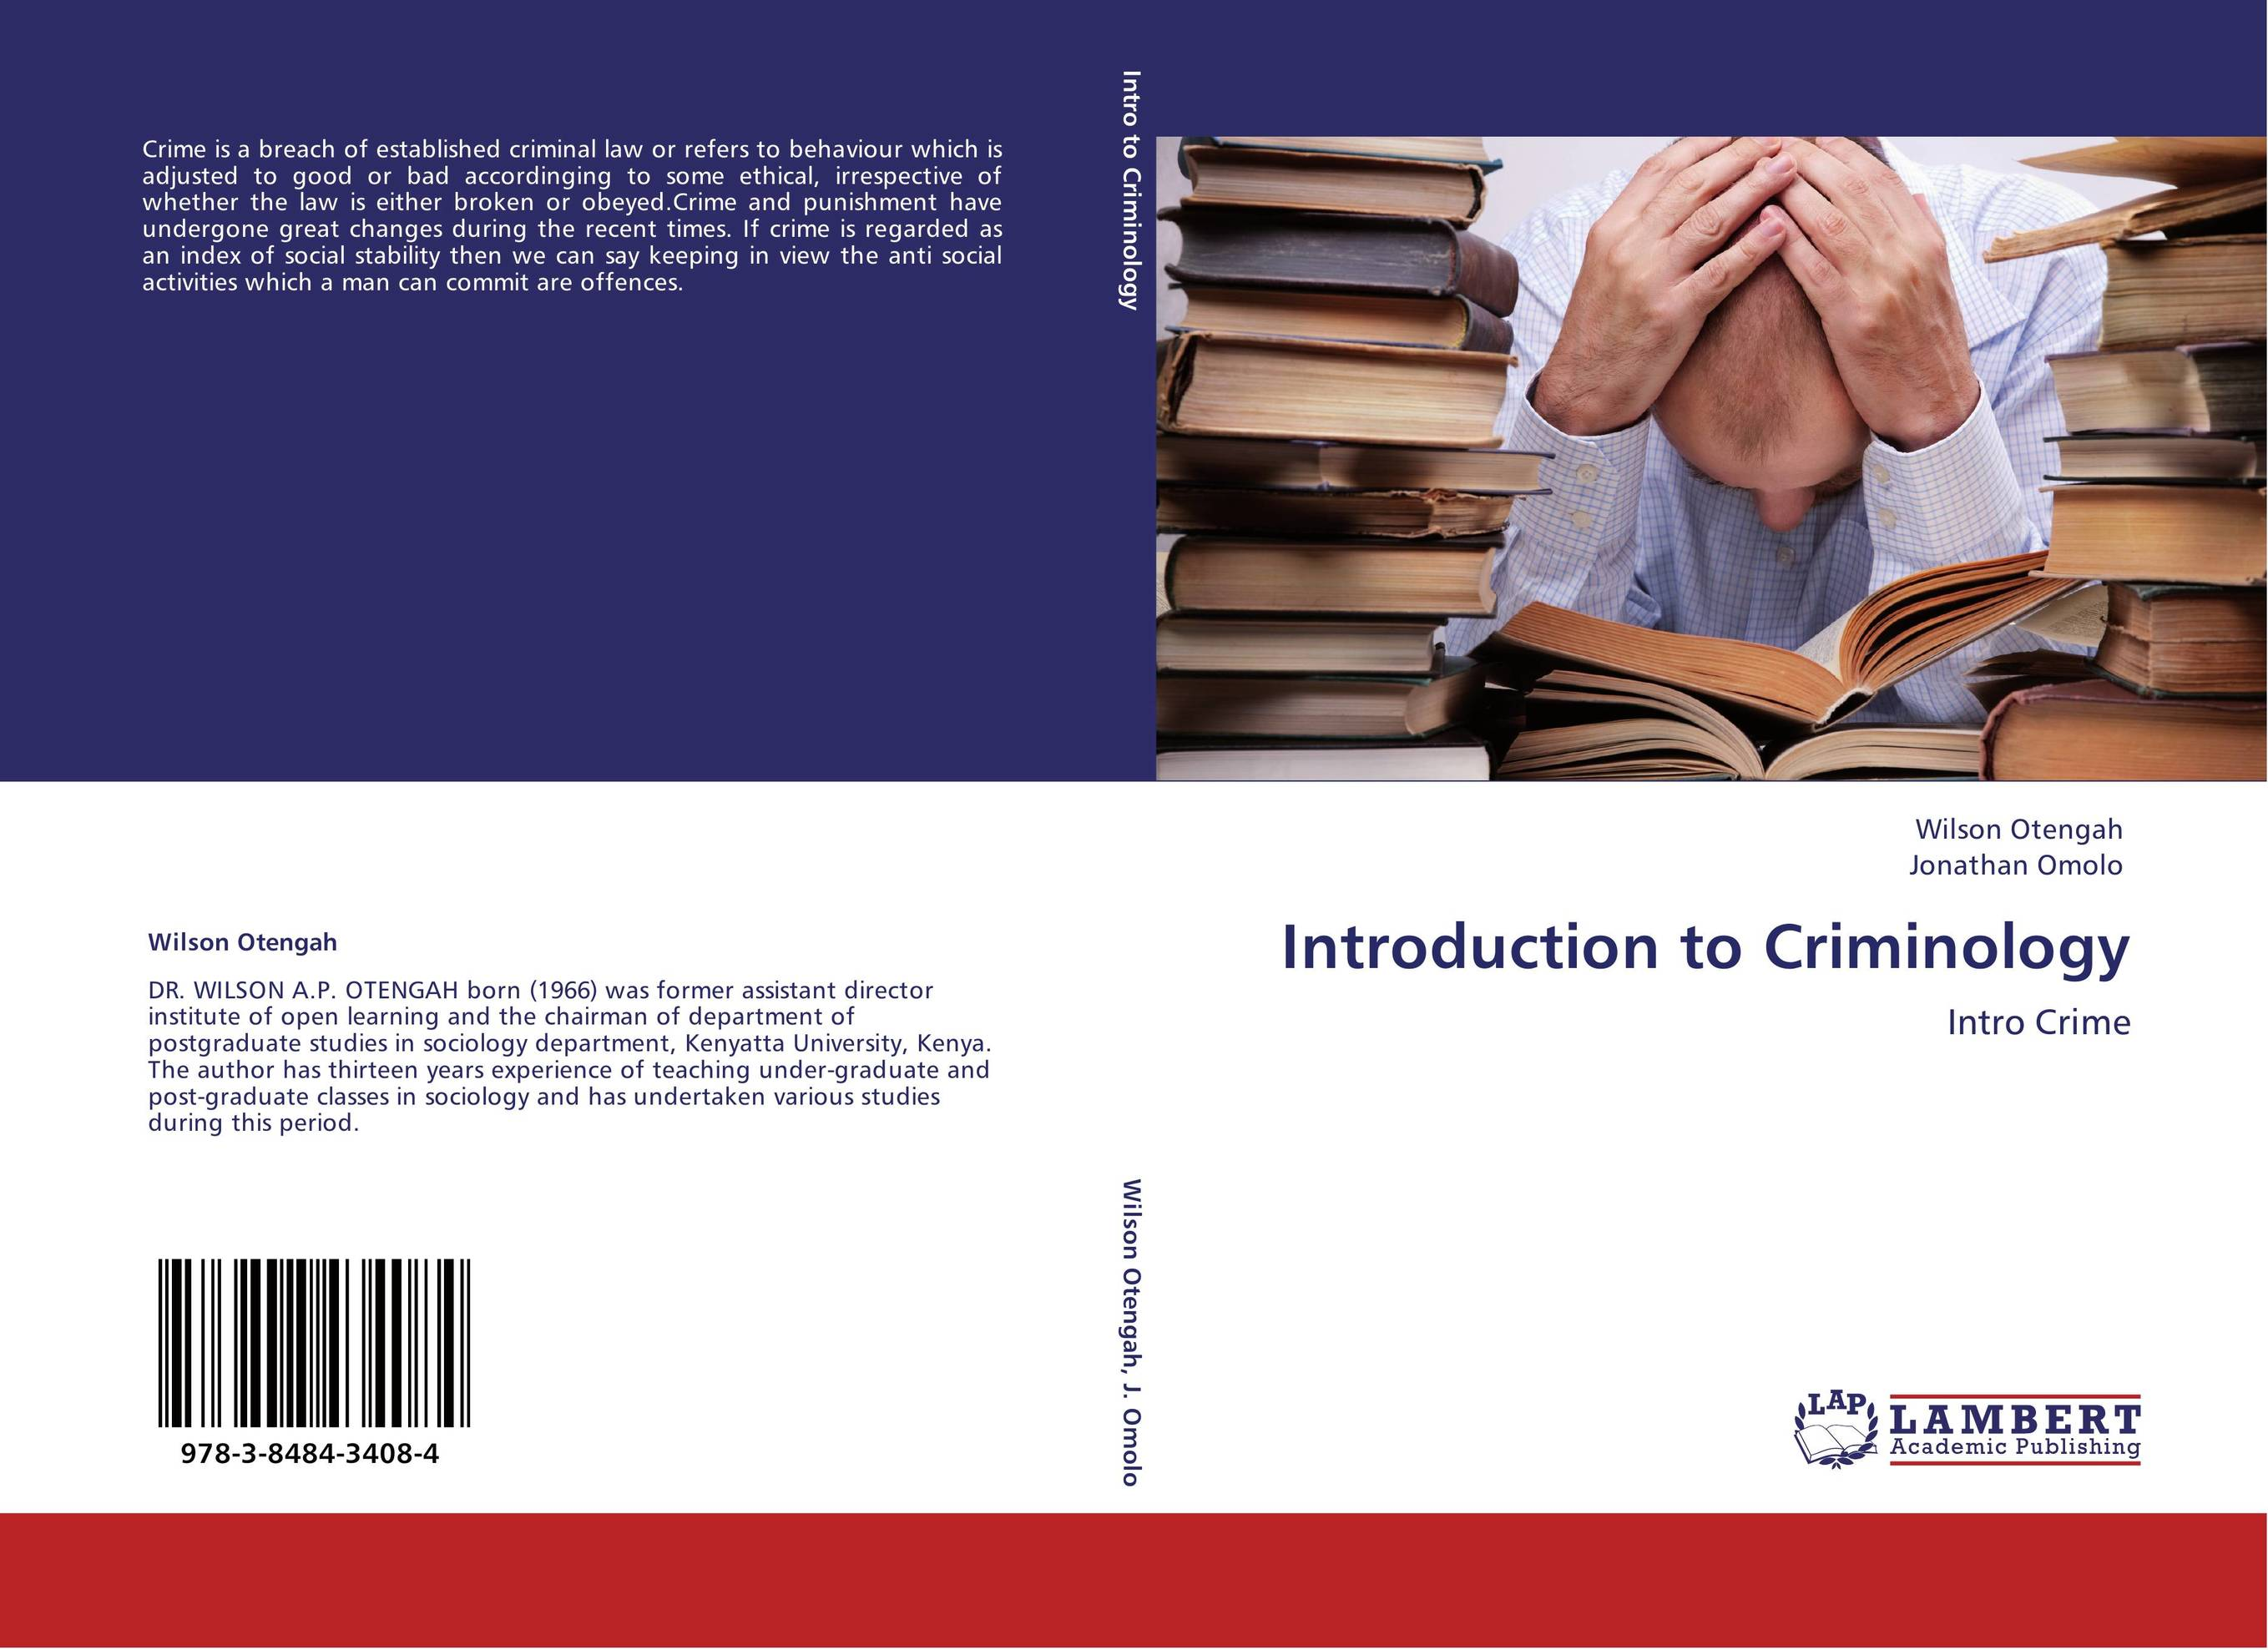 introduction to criminal behavior Generally speaking, criminal profiling involves making inferences about the physical, habitual, emotional, psychological and even vocational characteristics of criminals however, there are many different methods of criminal profiling, and all vary with respect to the soundness of underlying theory.